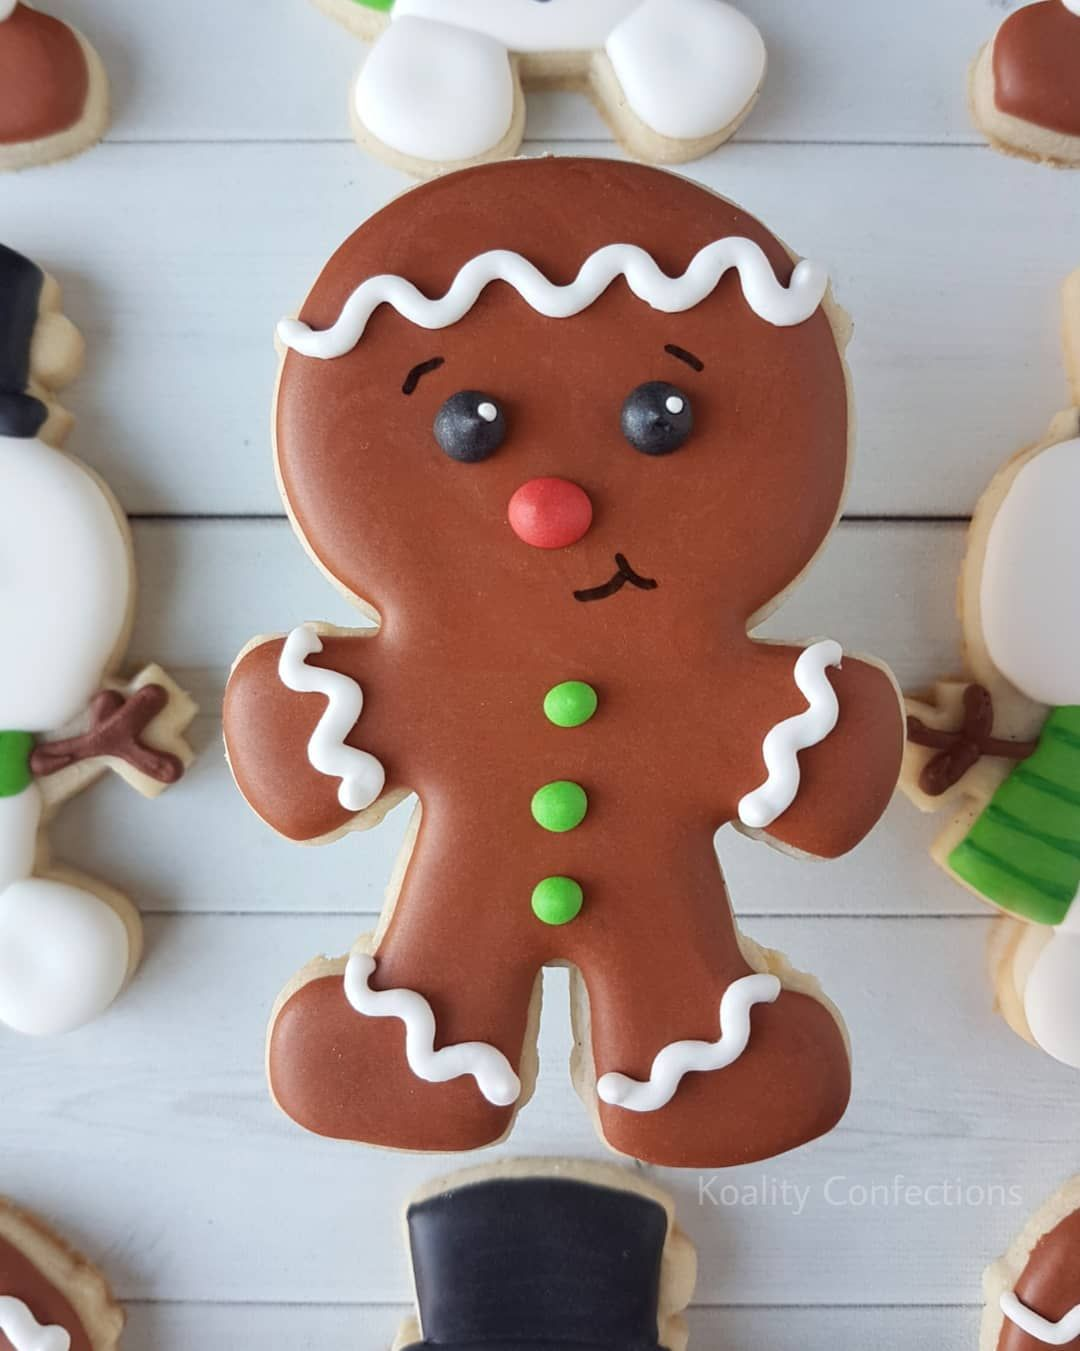 Christmas Gingerbread Man Sugar Cookie Decorated With Royal Icing